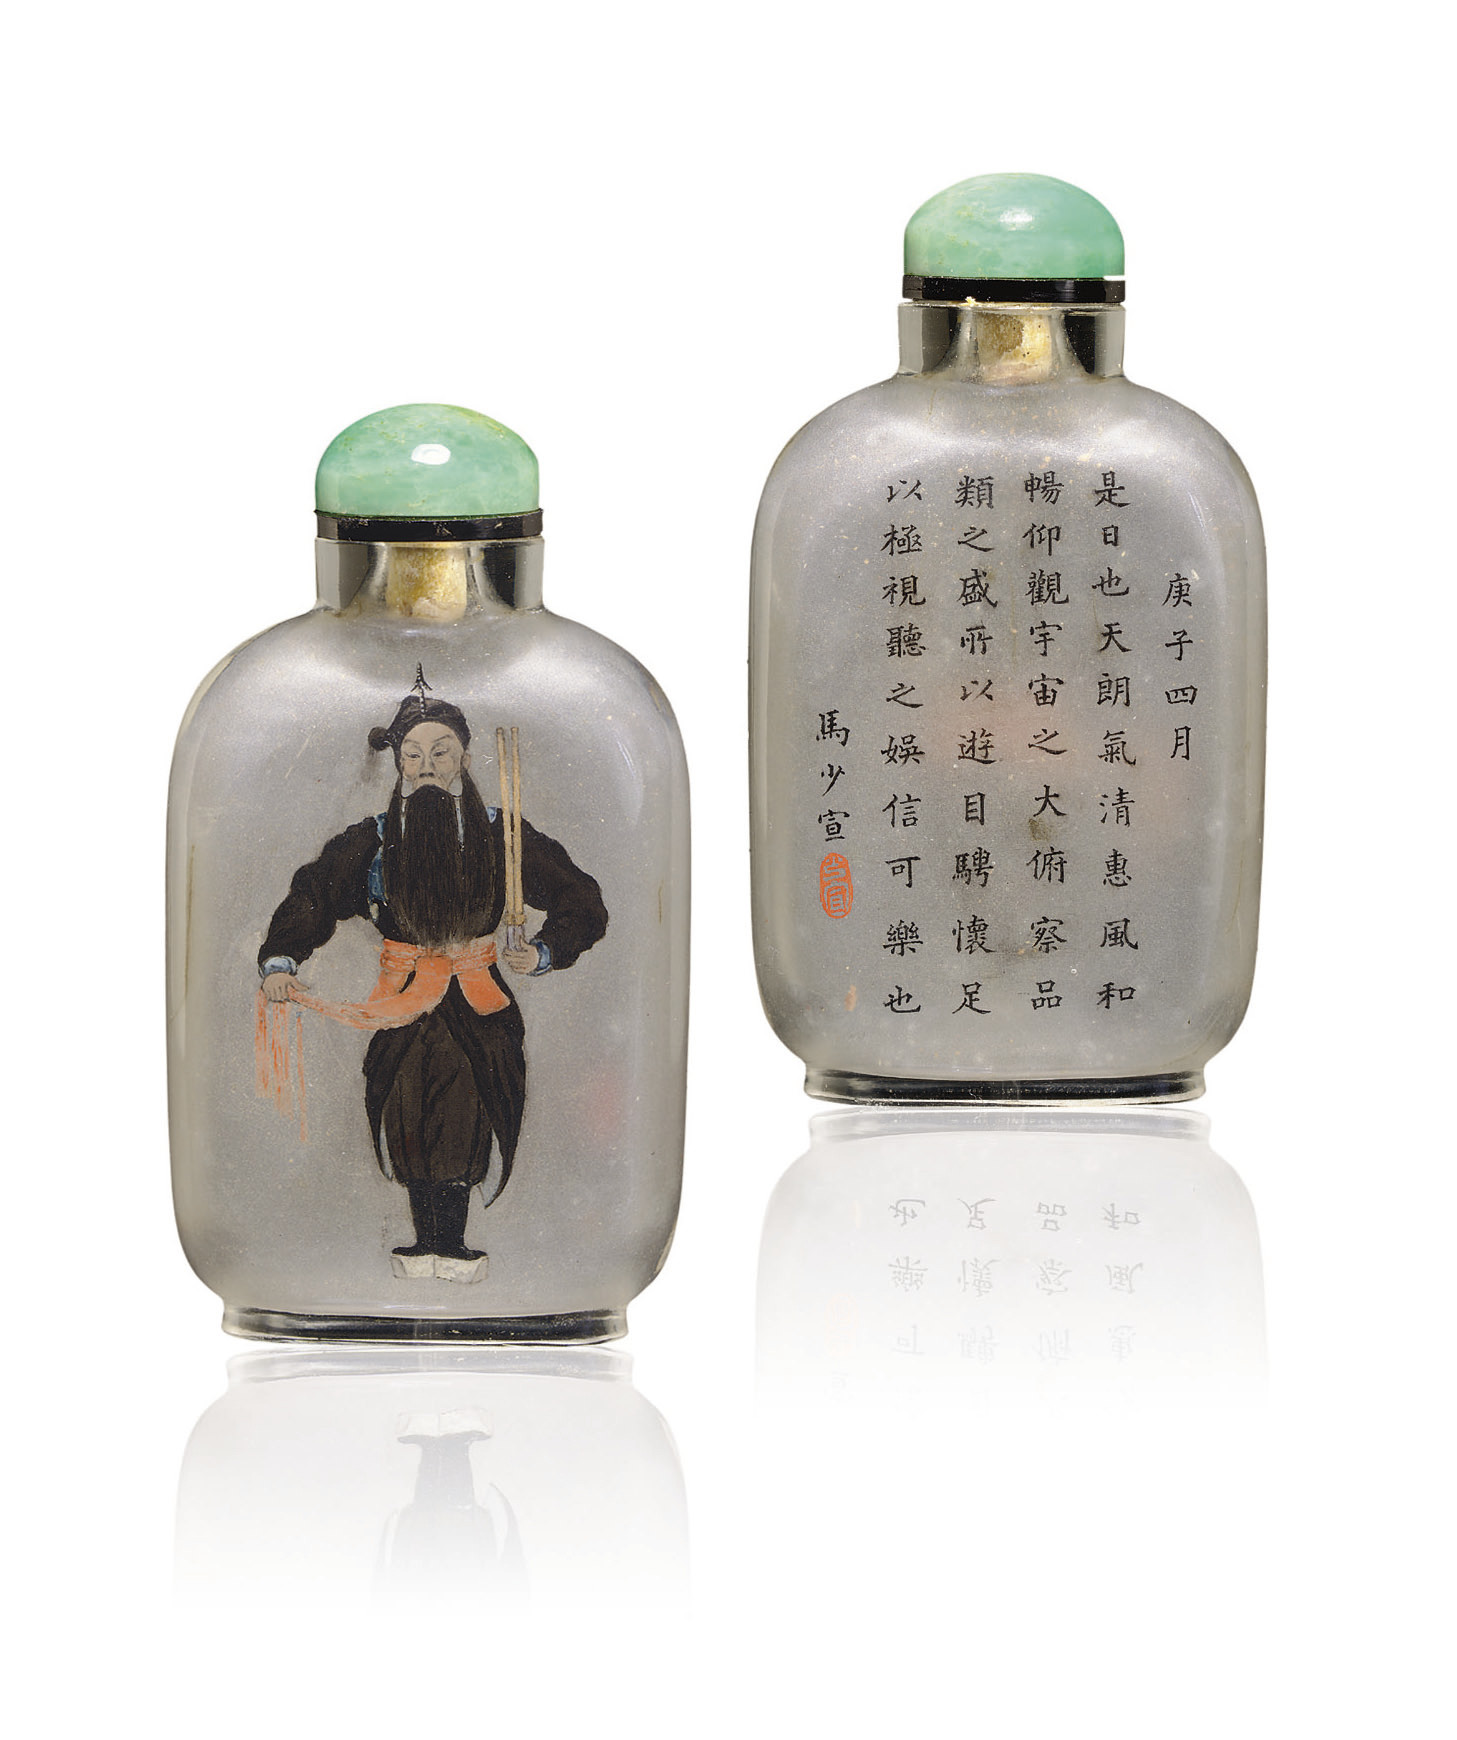 **A VERY RARE INSIDE-PAINTED GLASS SNUFF BOTTLE